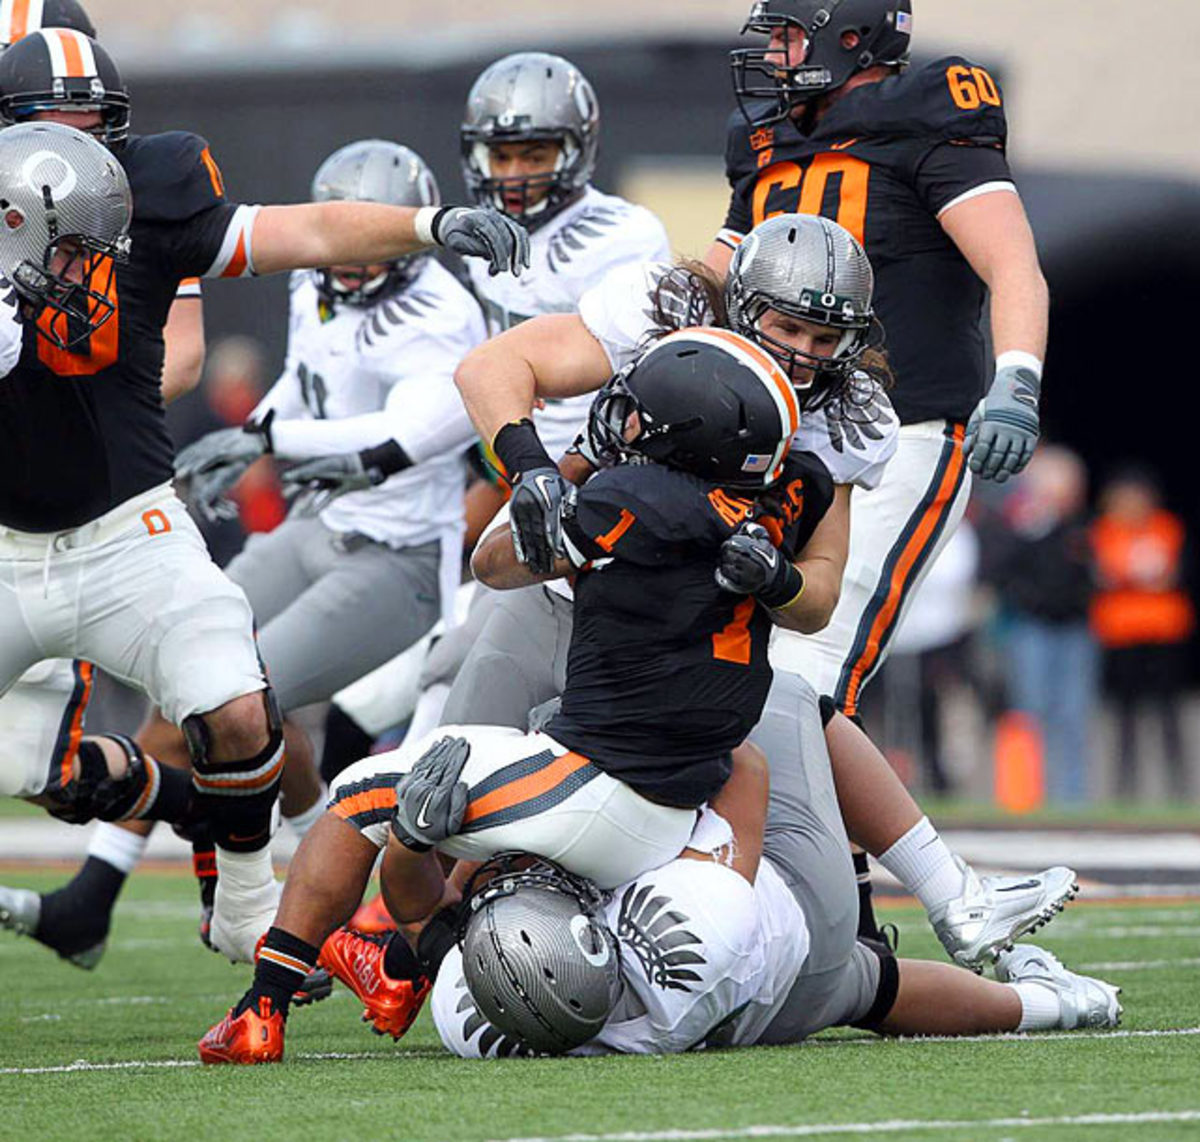 Defeated Oregon State 37-20